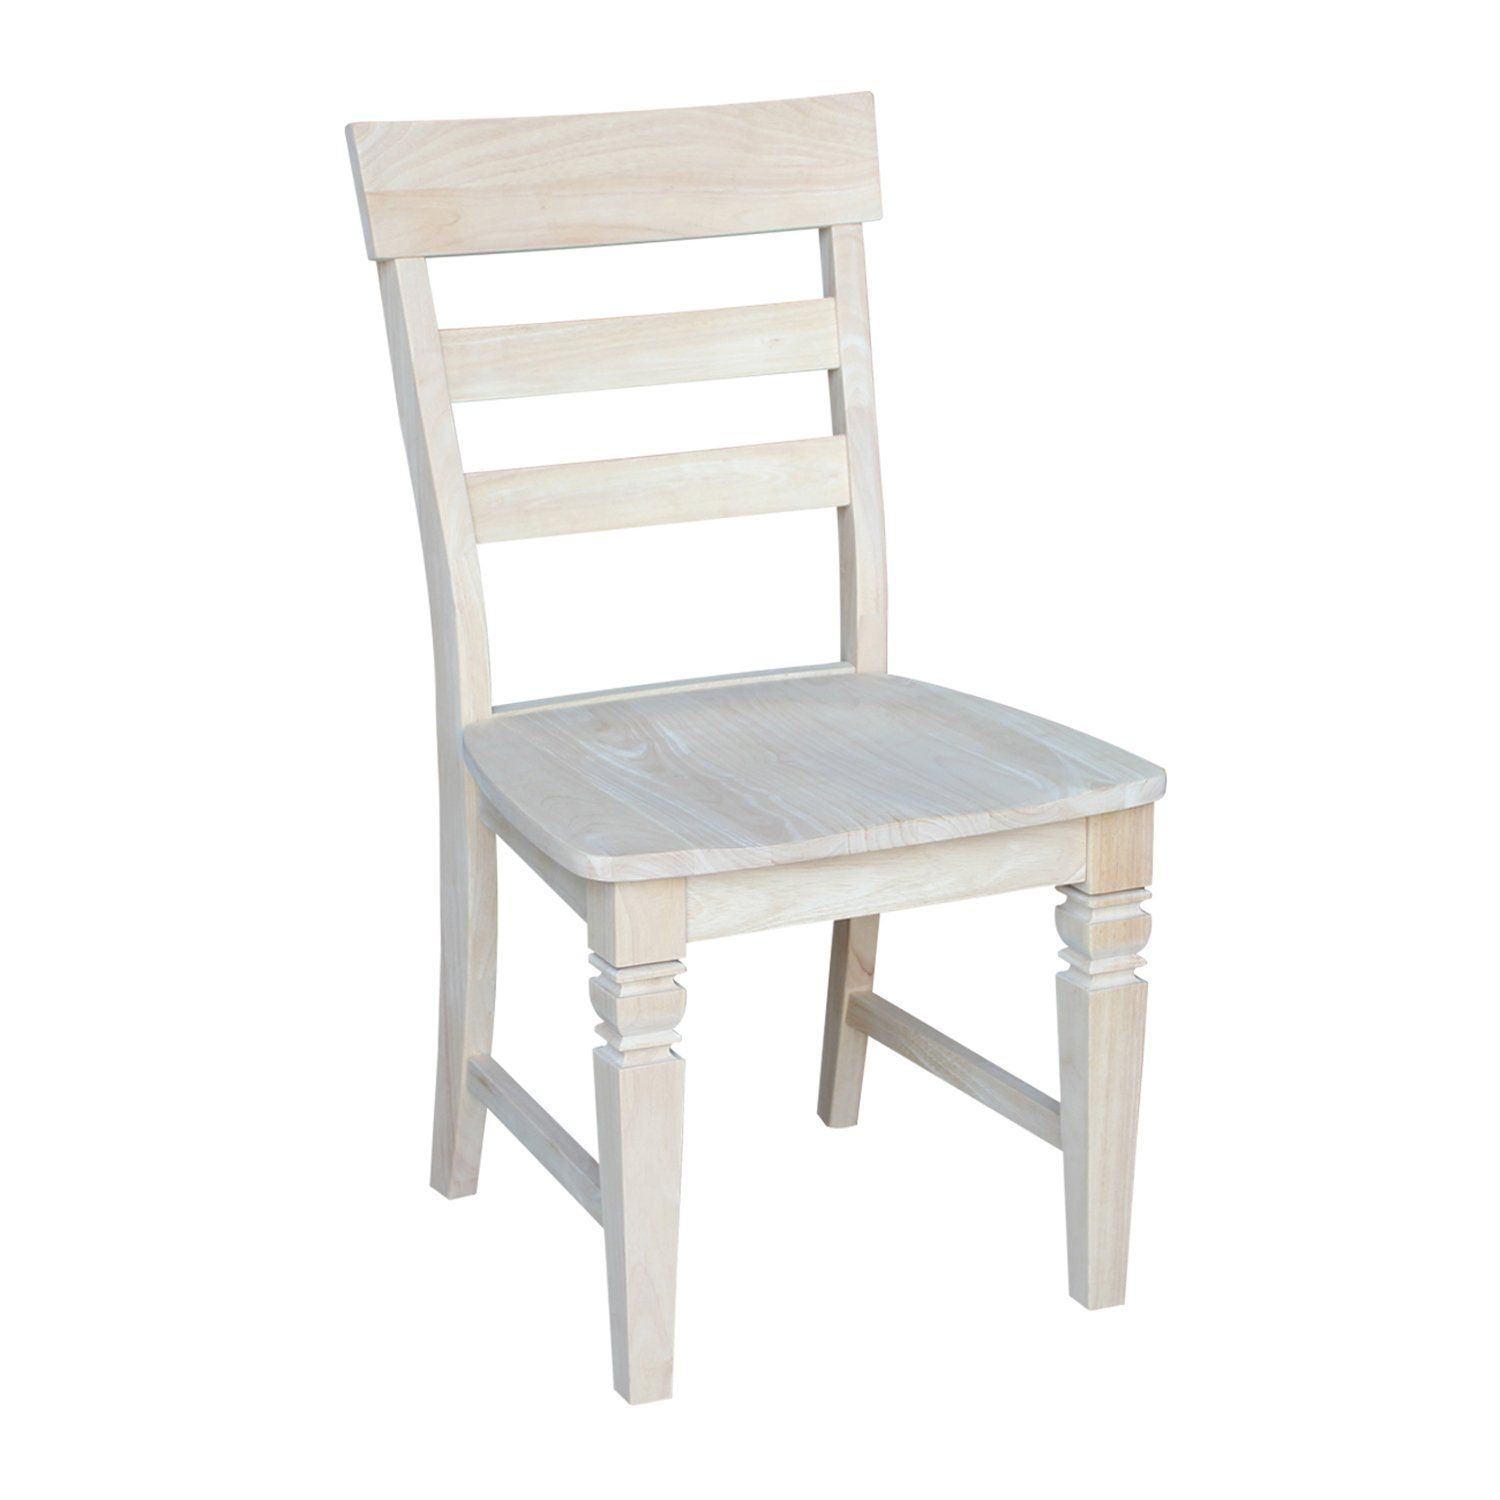 International Concepts C19p Java Chair With Solid Wood Seat Unfinished For More Information In 2020 Ladder Back Dining Chairs Dining Chairs Unfinished Wood Furniture